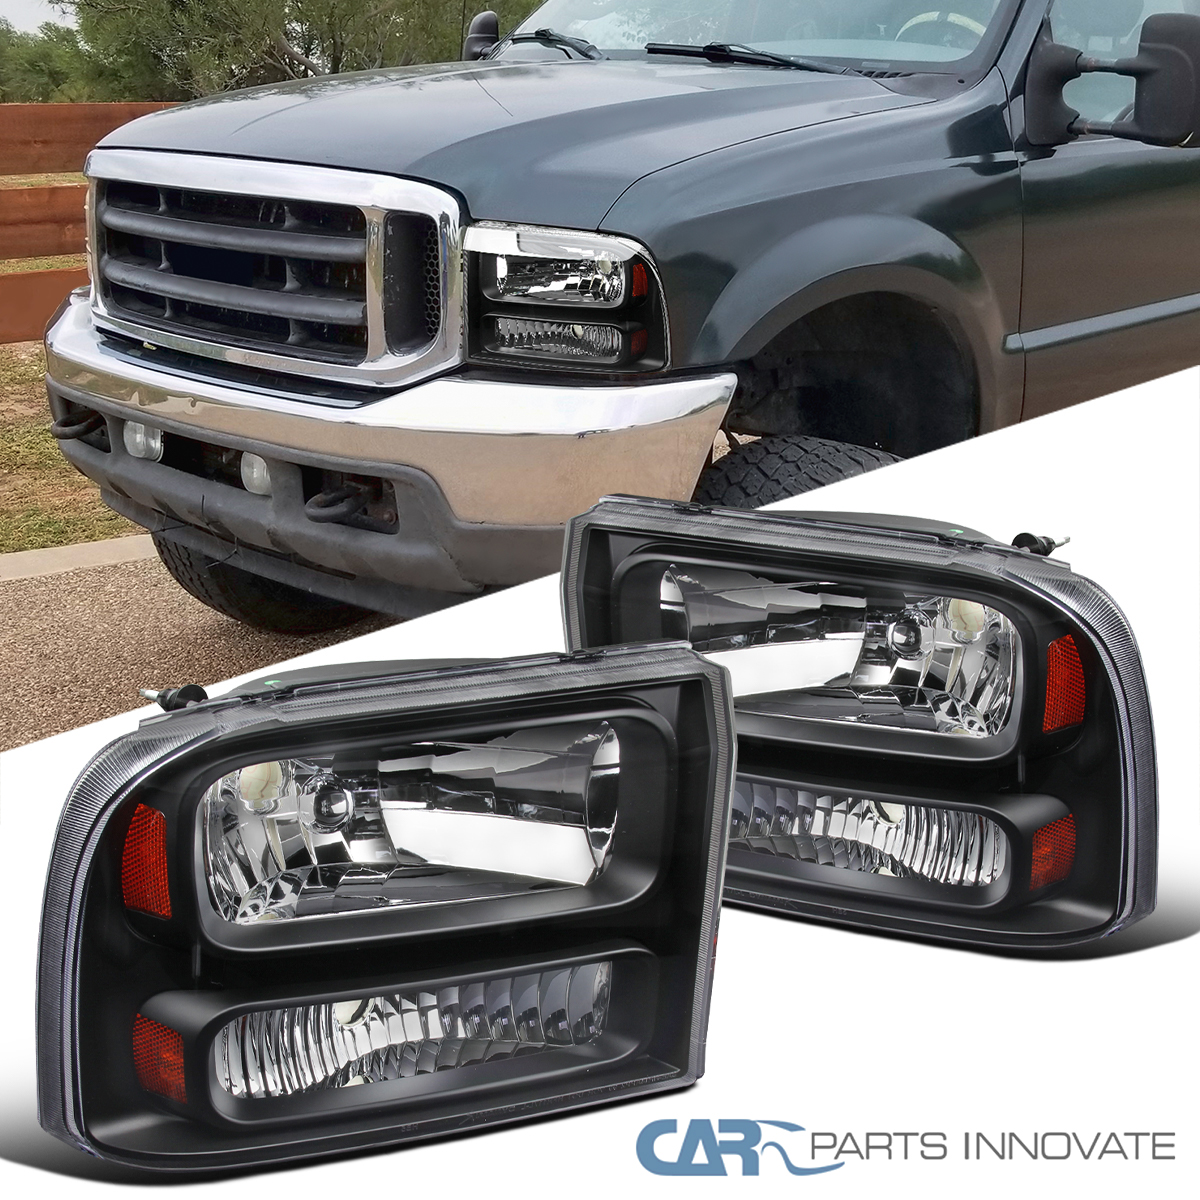 99 F350 Headlights >> Details About For 99 04 F250 F350 Super Duty 00 04 Excursion Pickup Black Clear 1pc Headlights